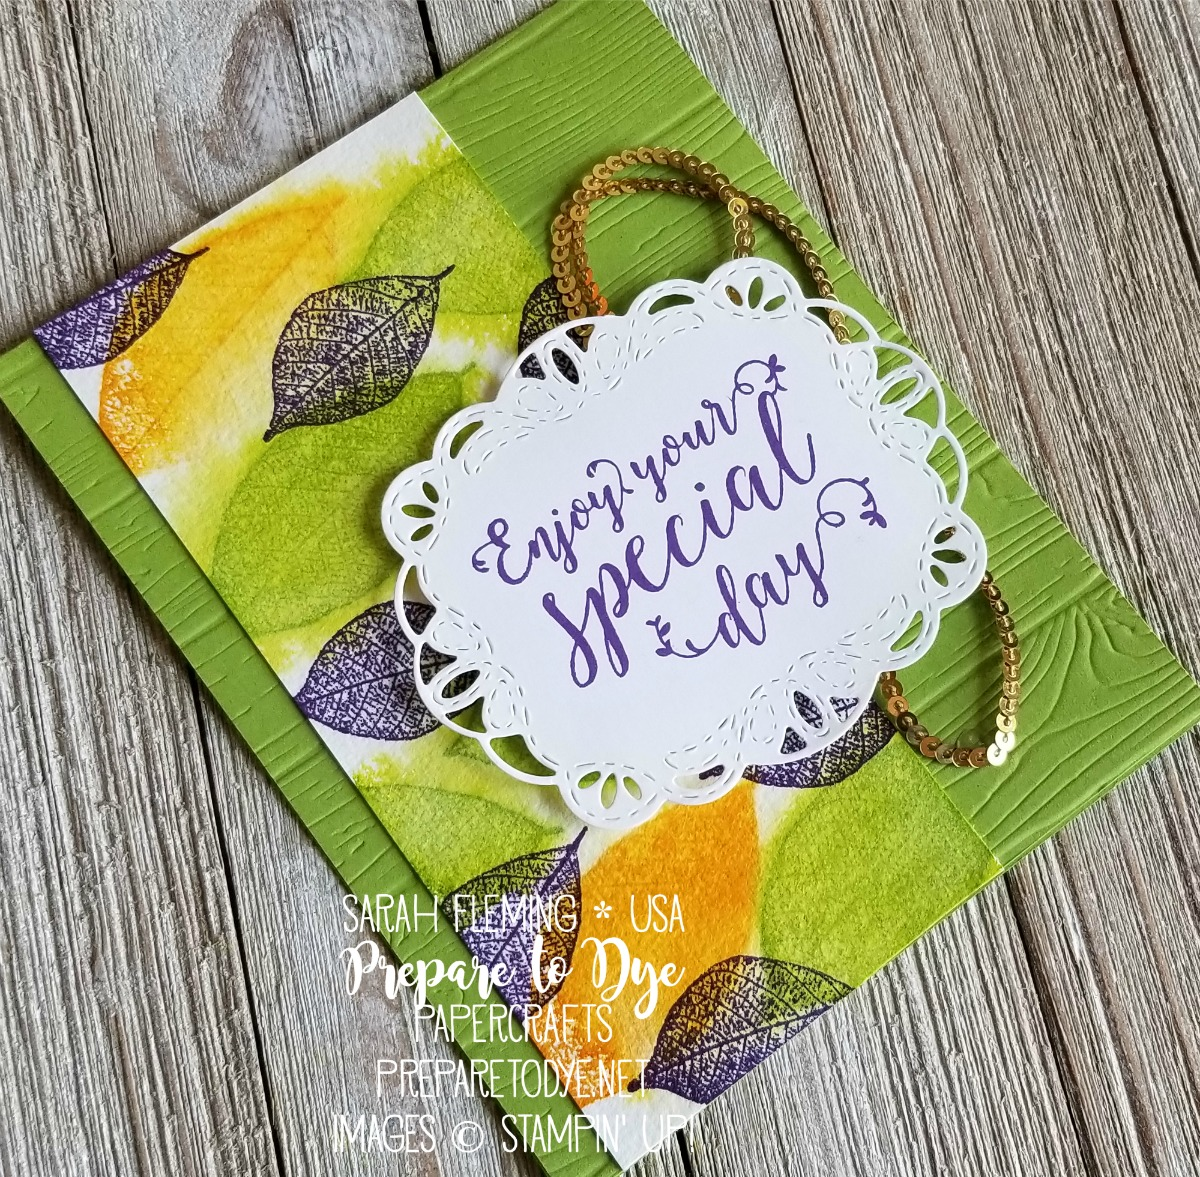 Stampin' Up! Rooted in Nature and Stitched All Around - new stamp sets in 2018-2019 annual catalog - with Stitched Labels framelits, Pinewood Planks embossing folder, and new colors Granny Apple Green, Mango Melody, Gorgeous Grape - live crafting video - Sarah Fleming - Prepare to Dye Papercrafts